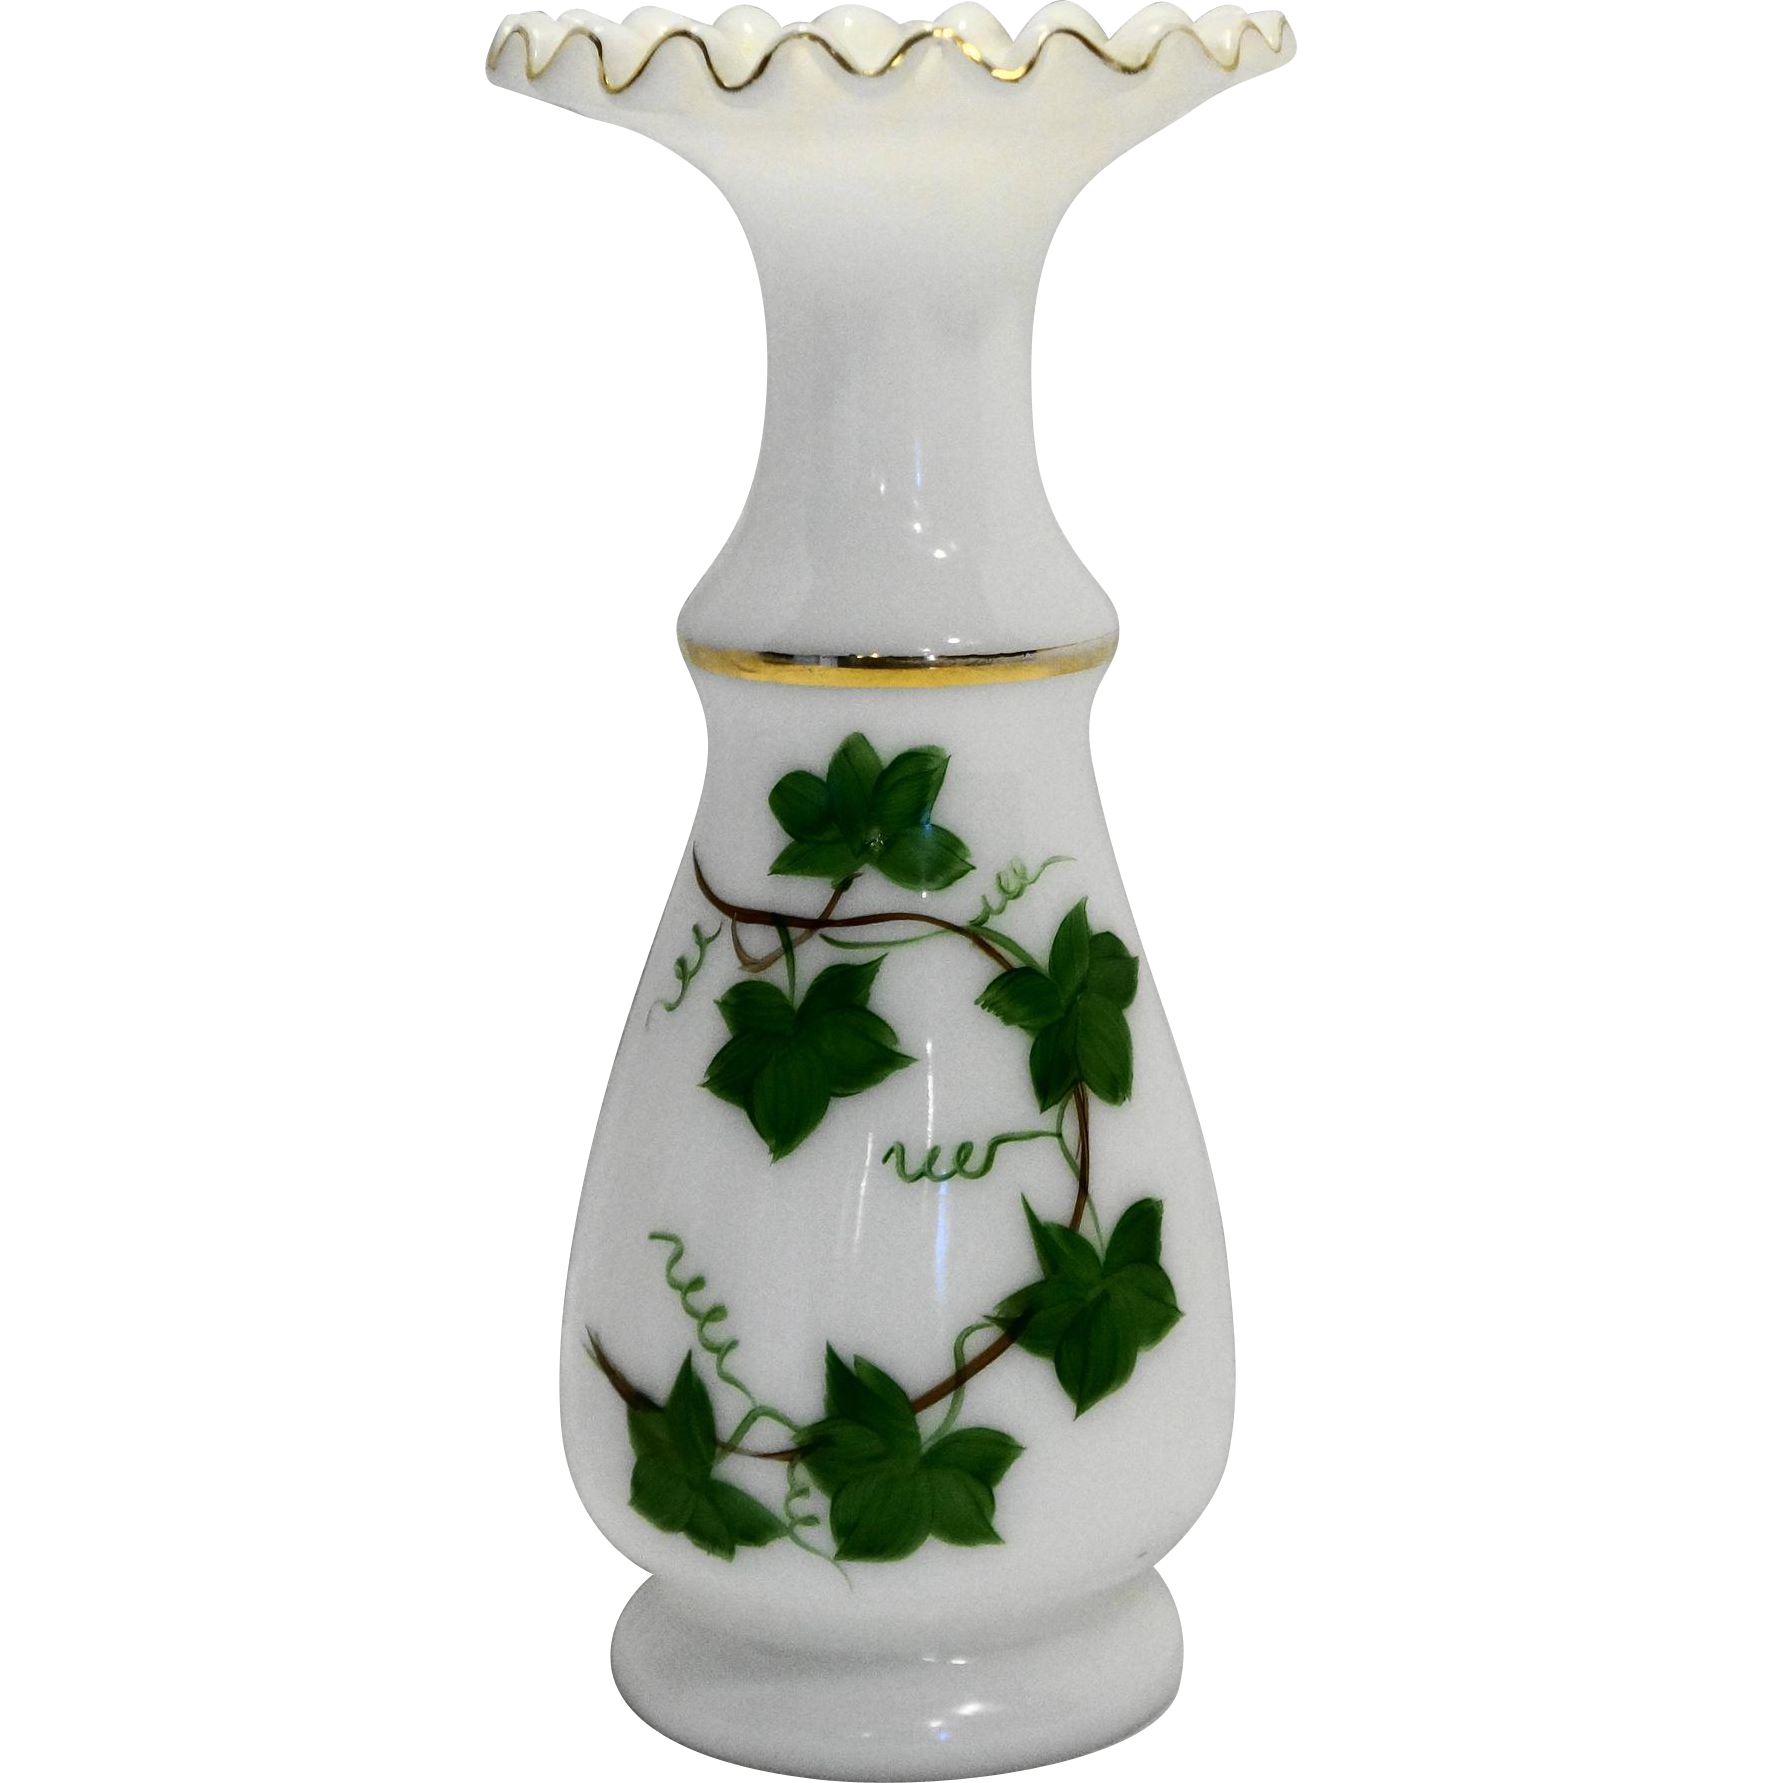 Consolidated Con Cora Art Glass Regent Line Hand Painted Ivy Vine Milk Glass Vase Ruffle Rim